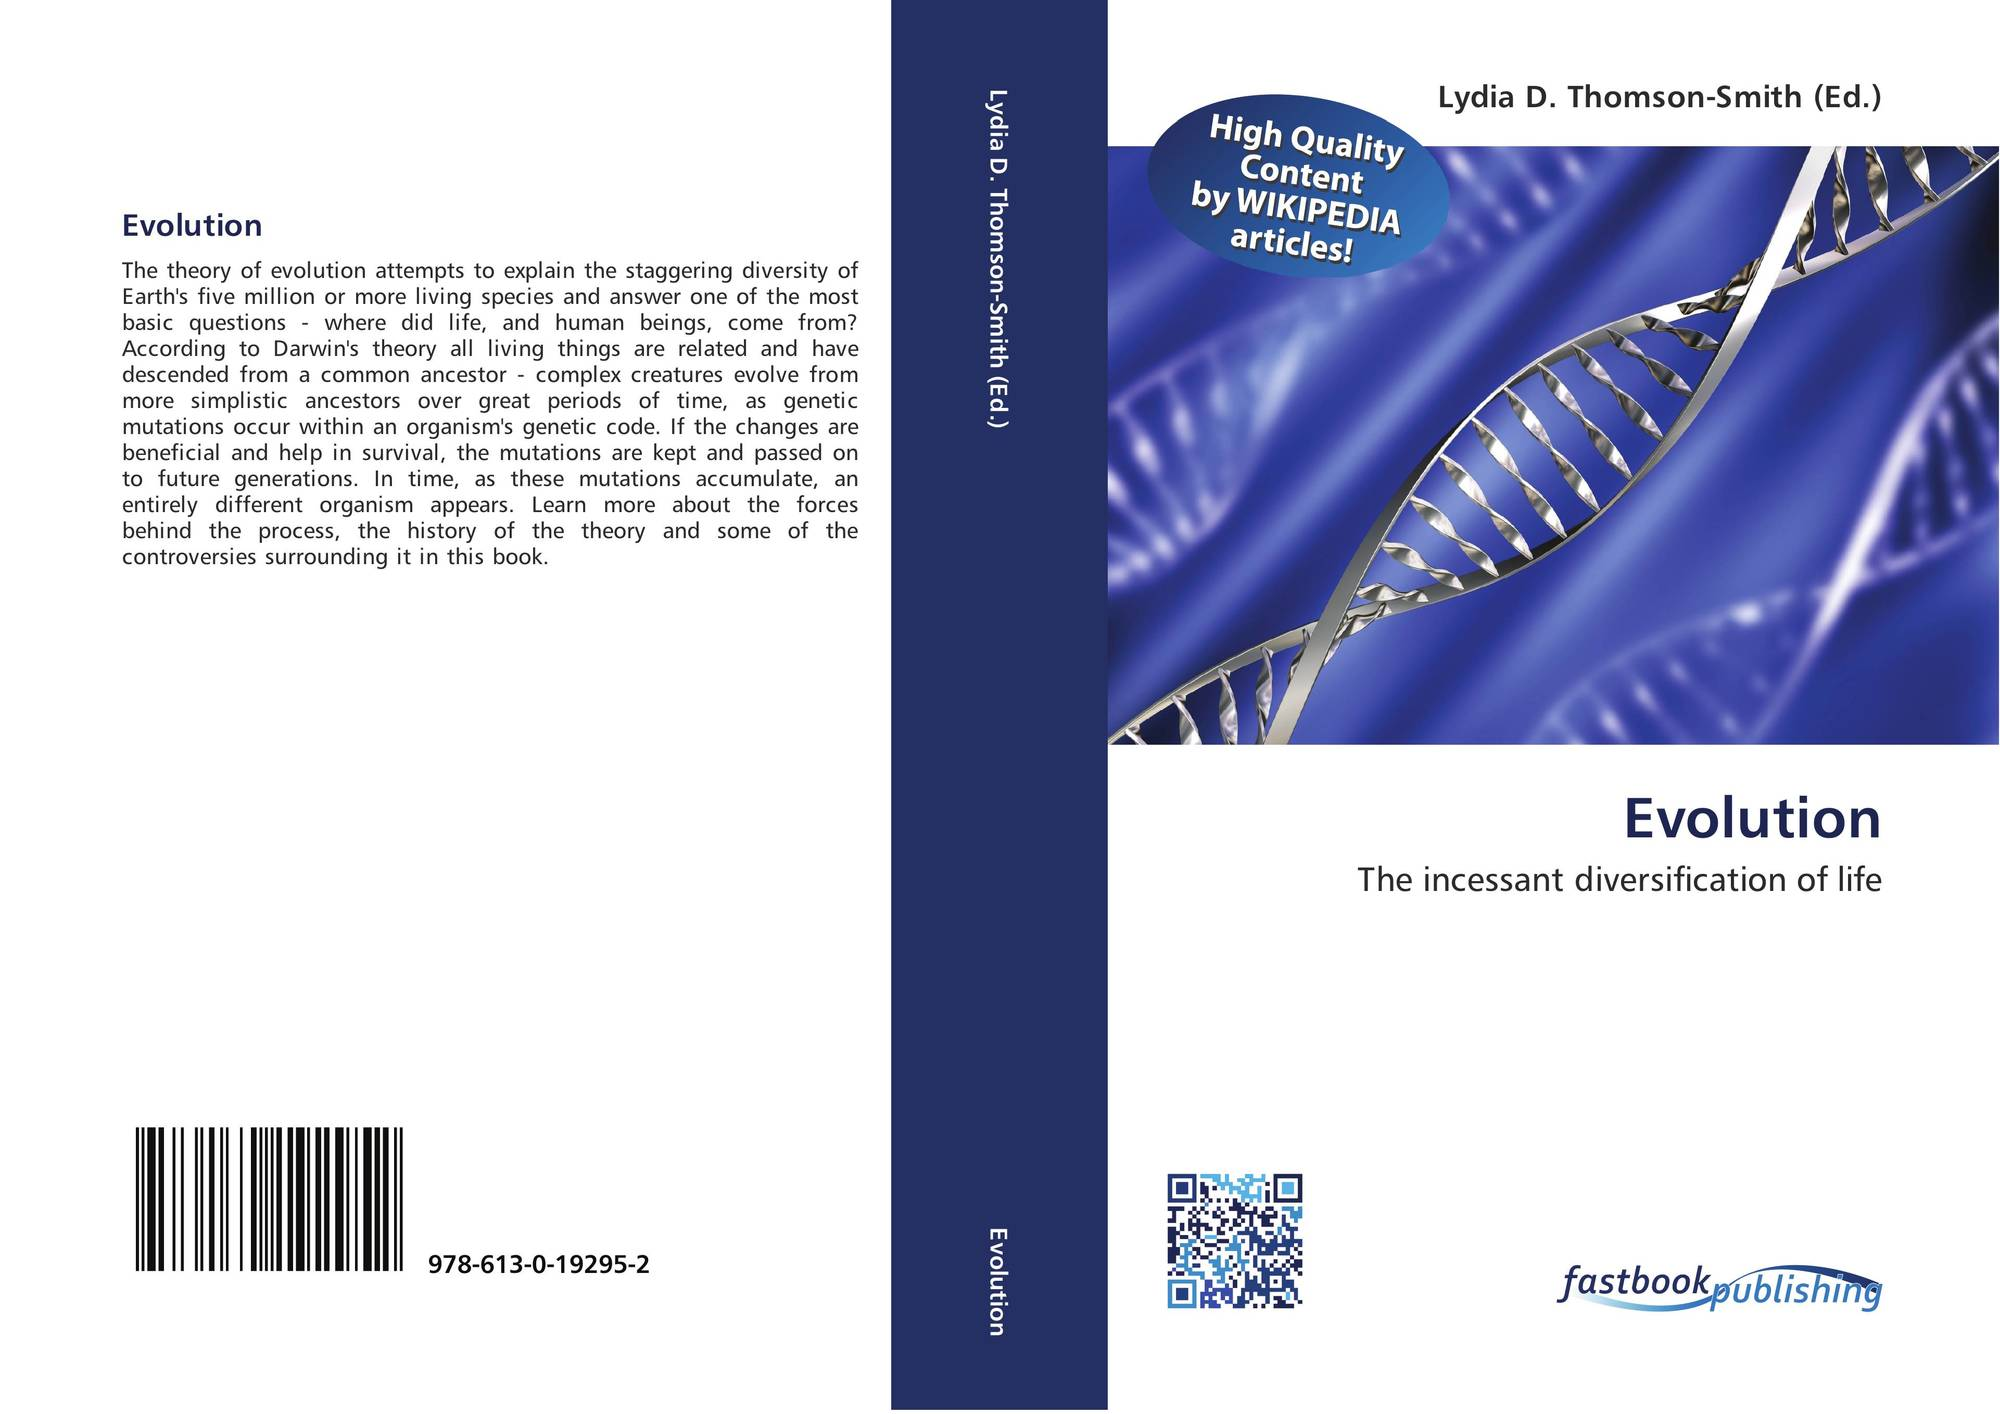 evolutionists attempts to answer the question regarding the origin of life The meaning of life, or the answer to the question what is the meaning of life,  the origin of life, and evolution, and by studying the objective factors which correlate with the subjective experience of meaning and happiness psychological significance and value in life researchers in positive psychology study empirical factors that lead to life.